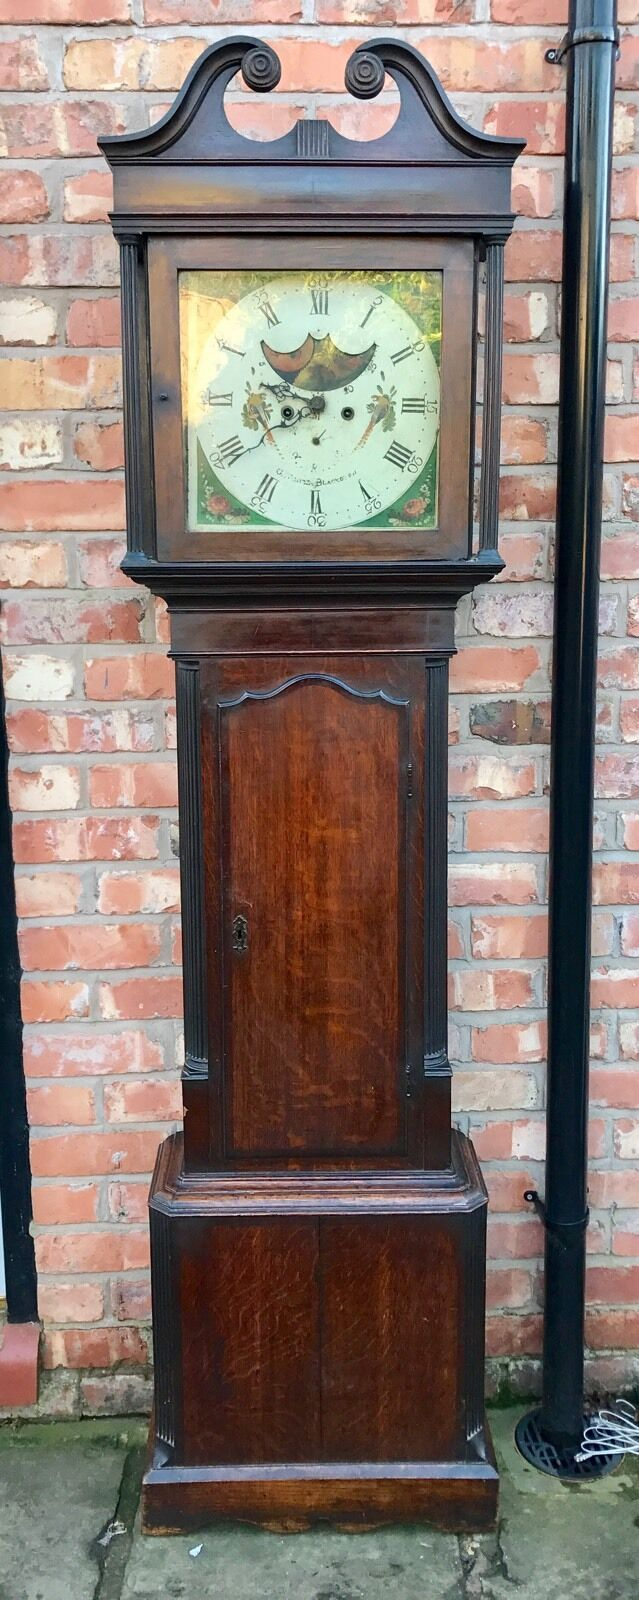 Oak And Mahogany Cross Banded 8 Day Grand Father Clock By G. Stones Blackburn